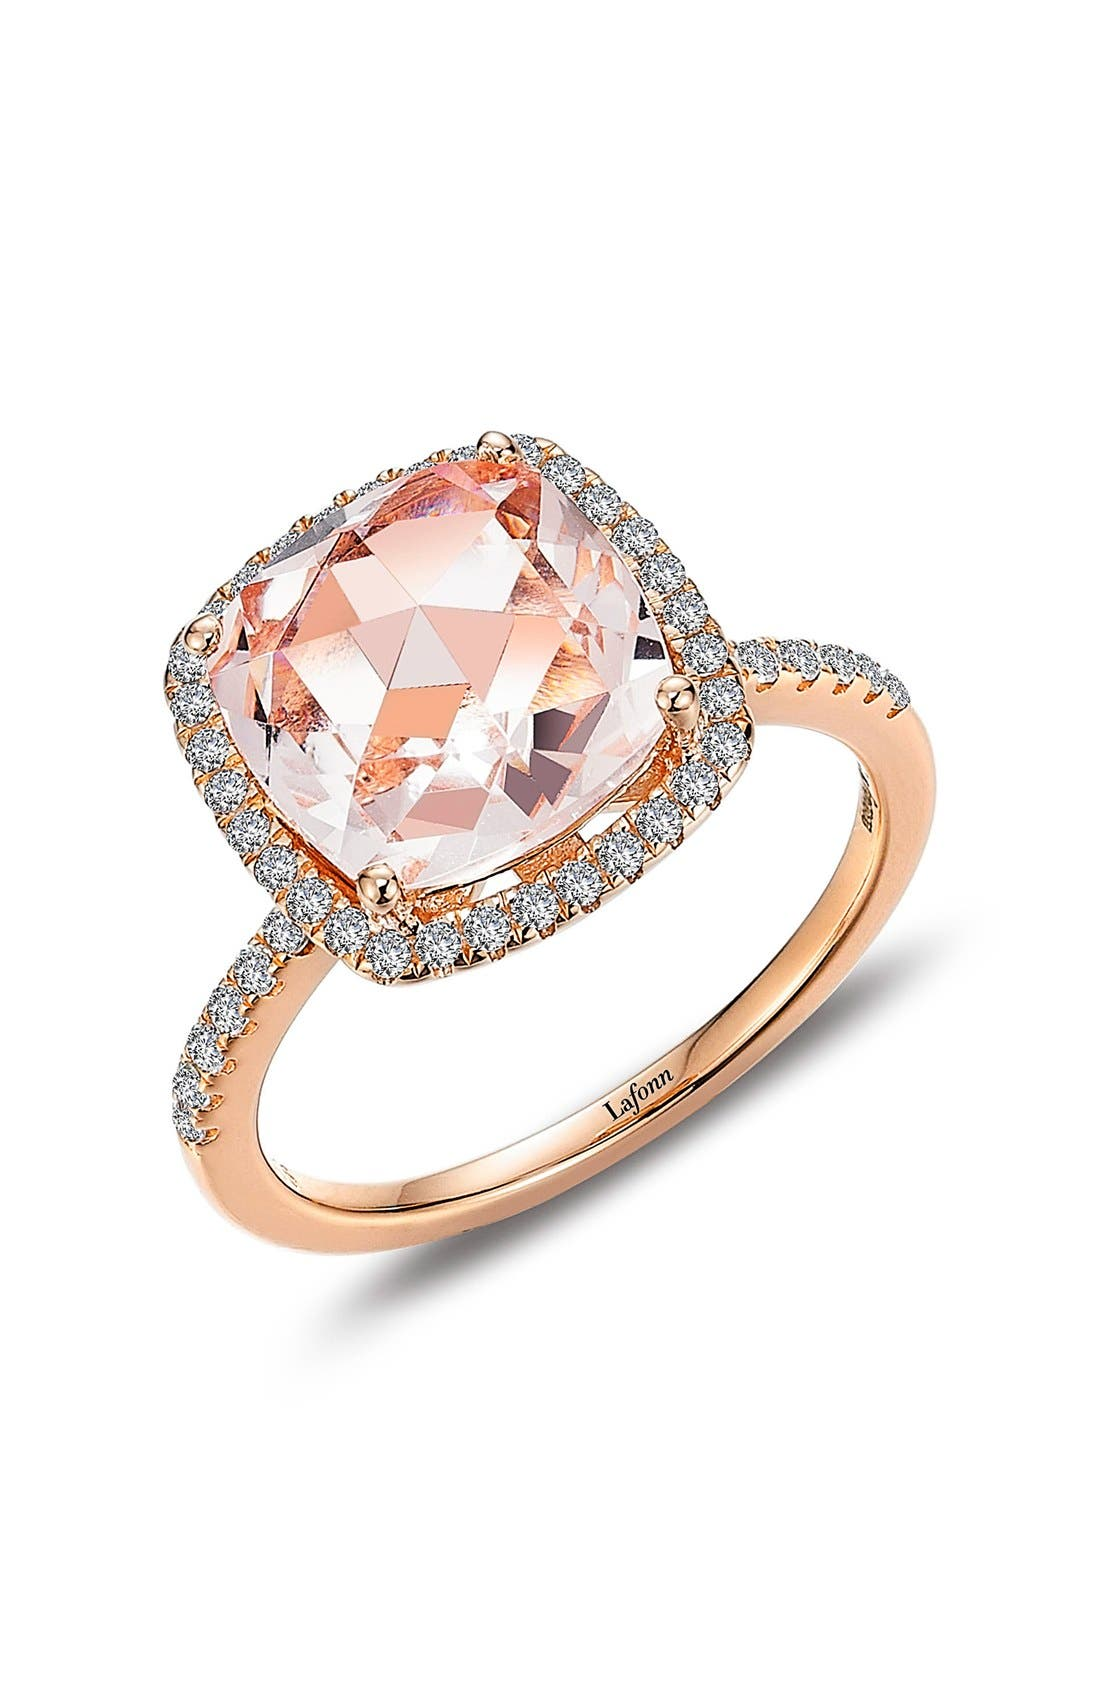 LAFONN, Classic Square Halo Ring, Main thumbnail 1, color, PINK / ROSE GOLD